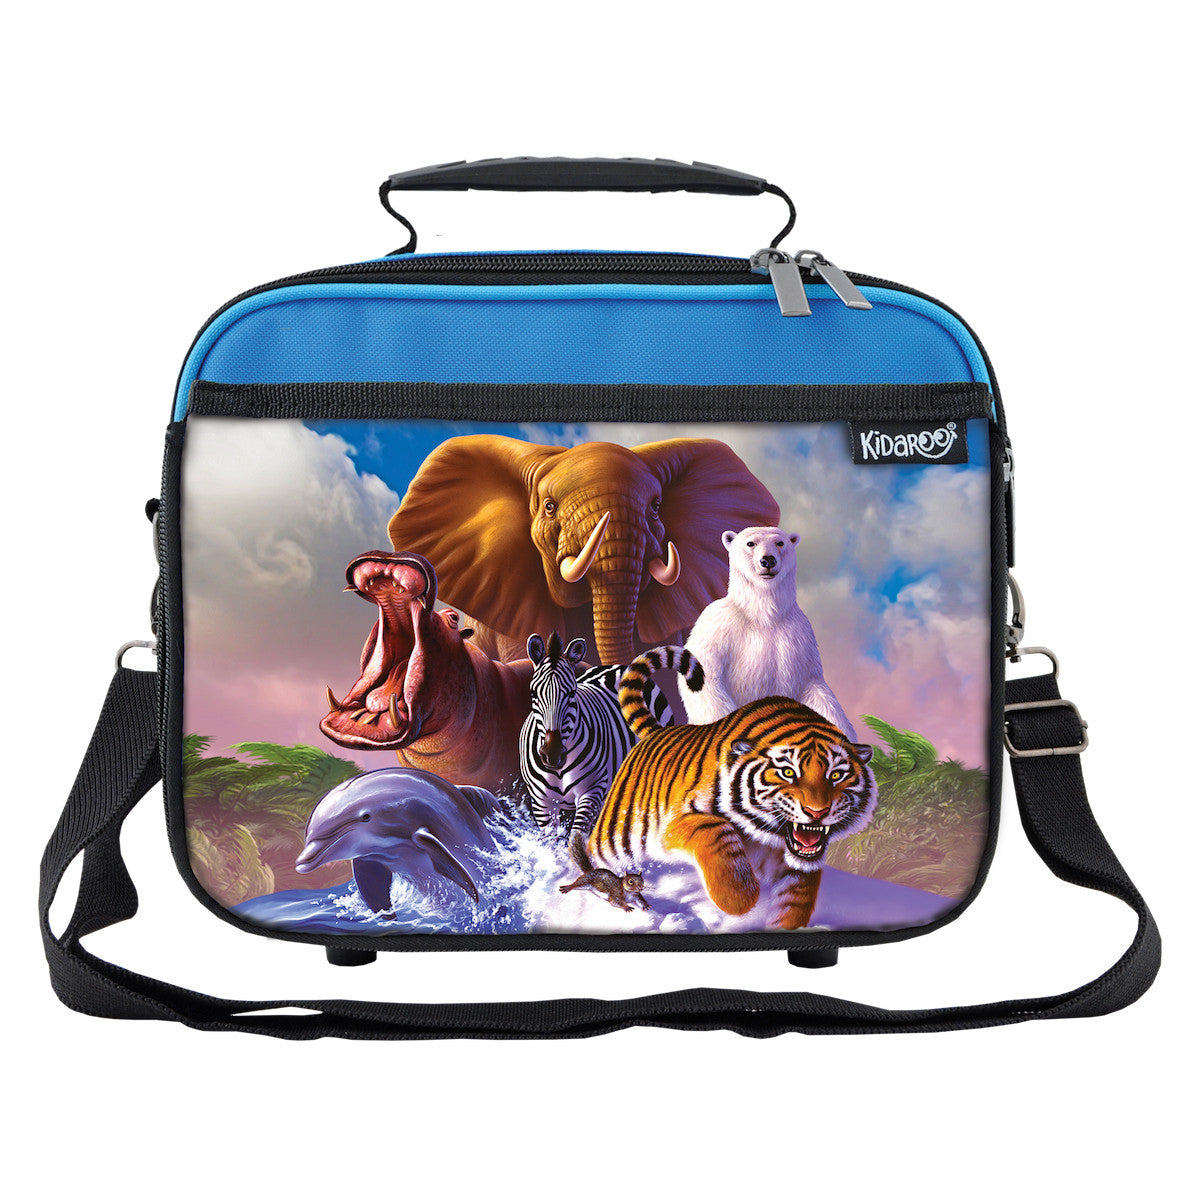 Wildlife Planet School Lunchbox, Tote Bag for Boys, Girls, Kids